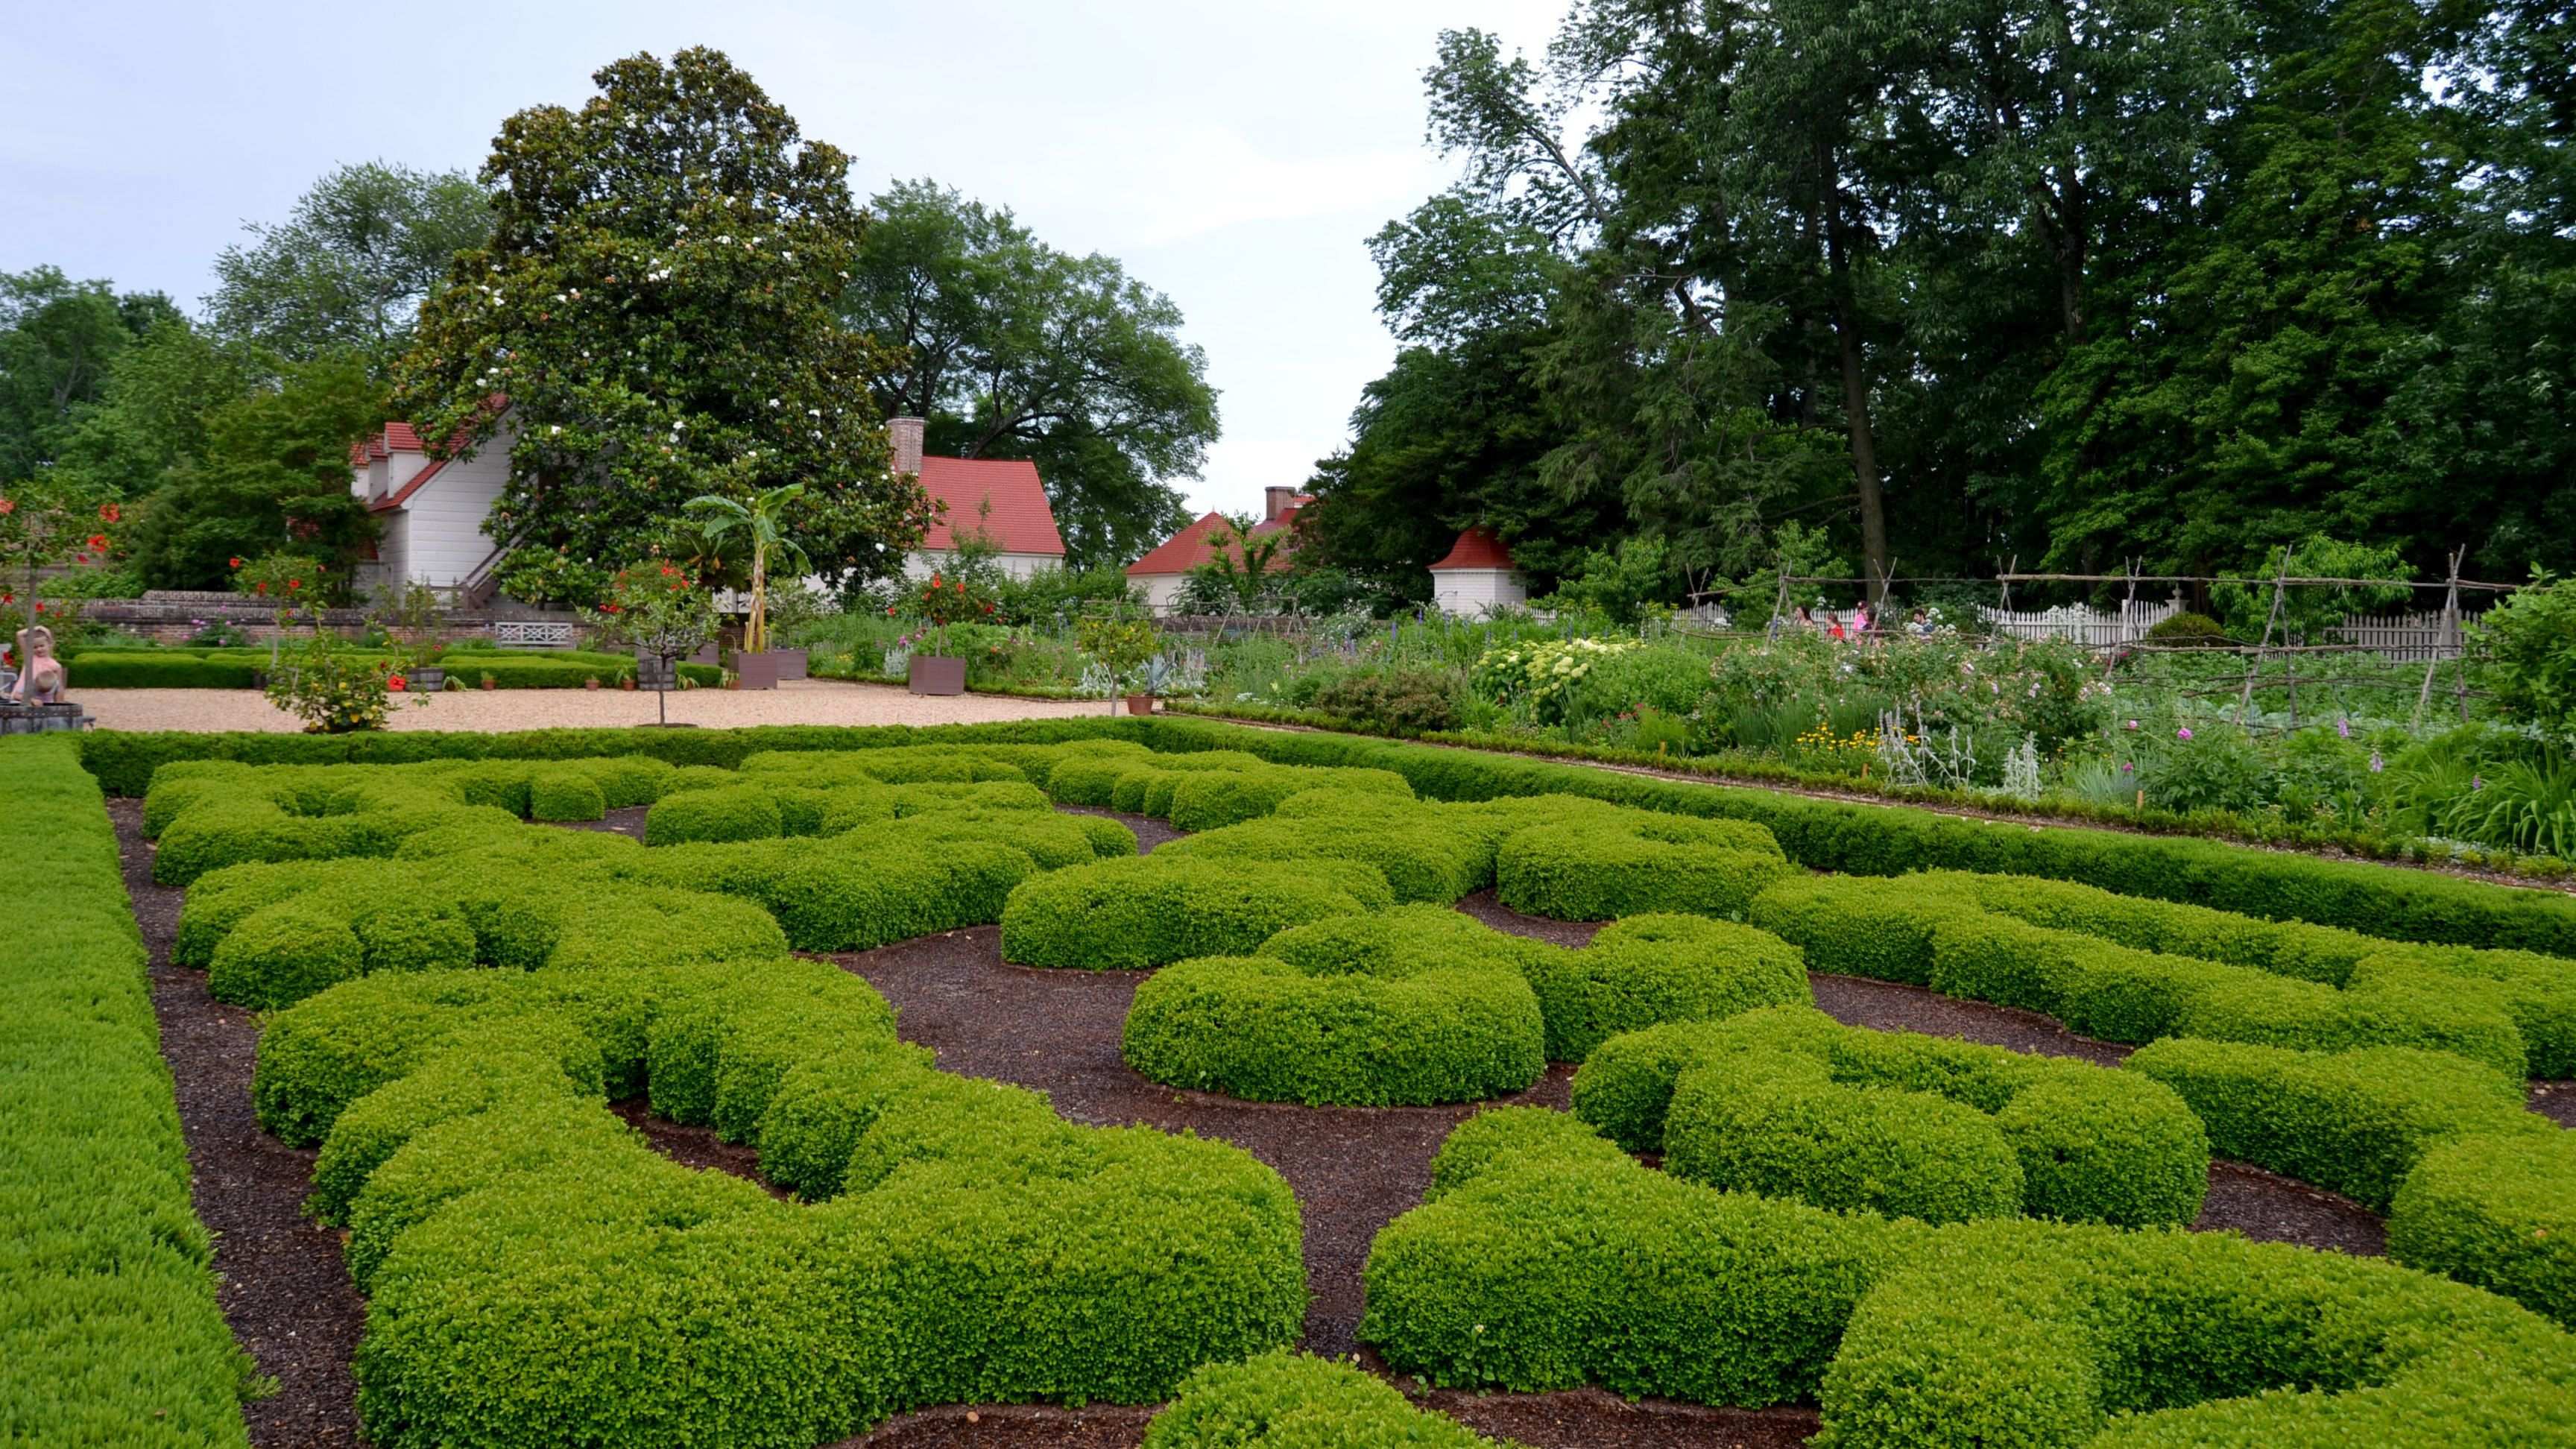 Guided Tour of George Washington's Mount Vernon Estate & Gardens